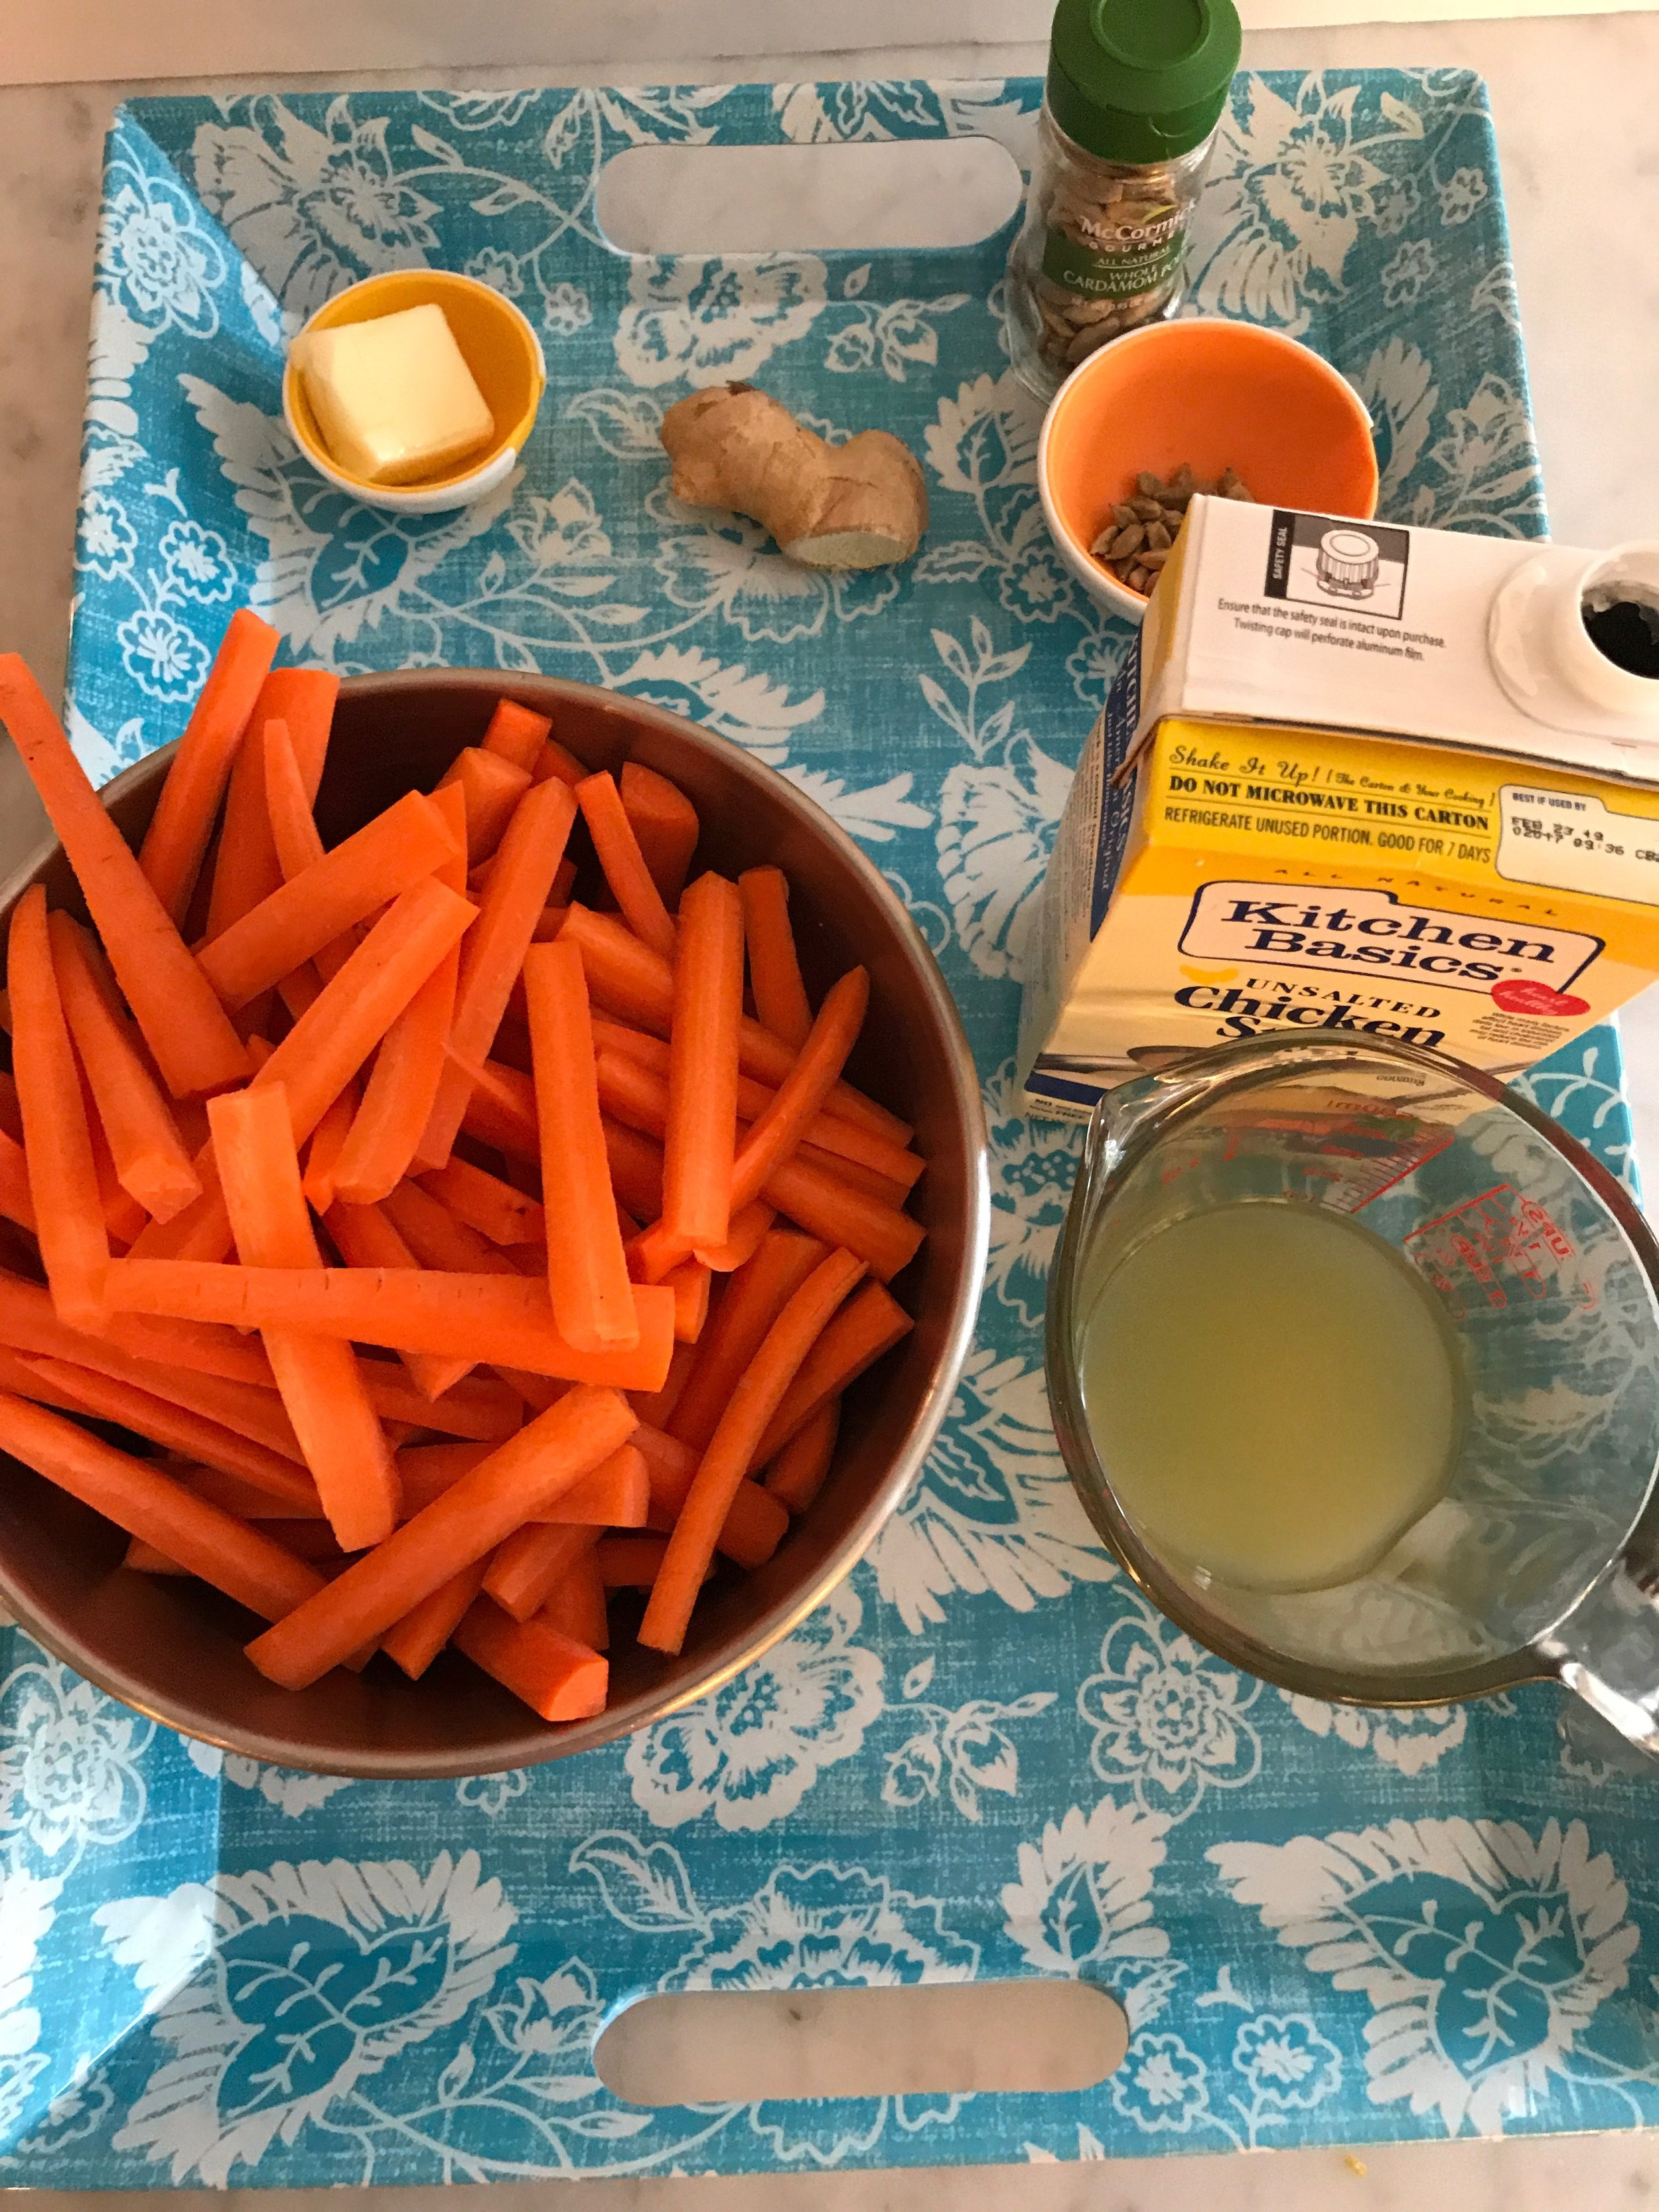 Ingredients - 2T unsalted butter1-inch piece ginger root, peeled and cut into pieces1T cardamom seeds2 pounds carrots, peeled, trimmed, and cut into sticks about 2 inches longsalt & pepper½ cup chicken stock